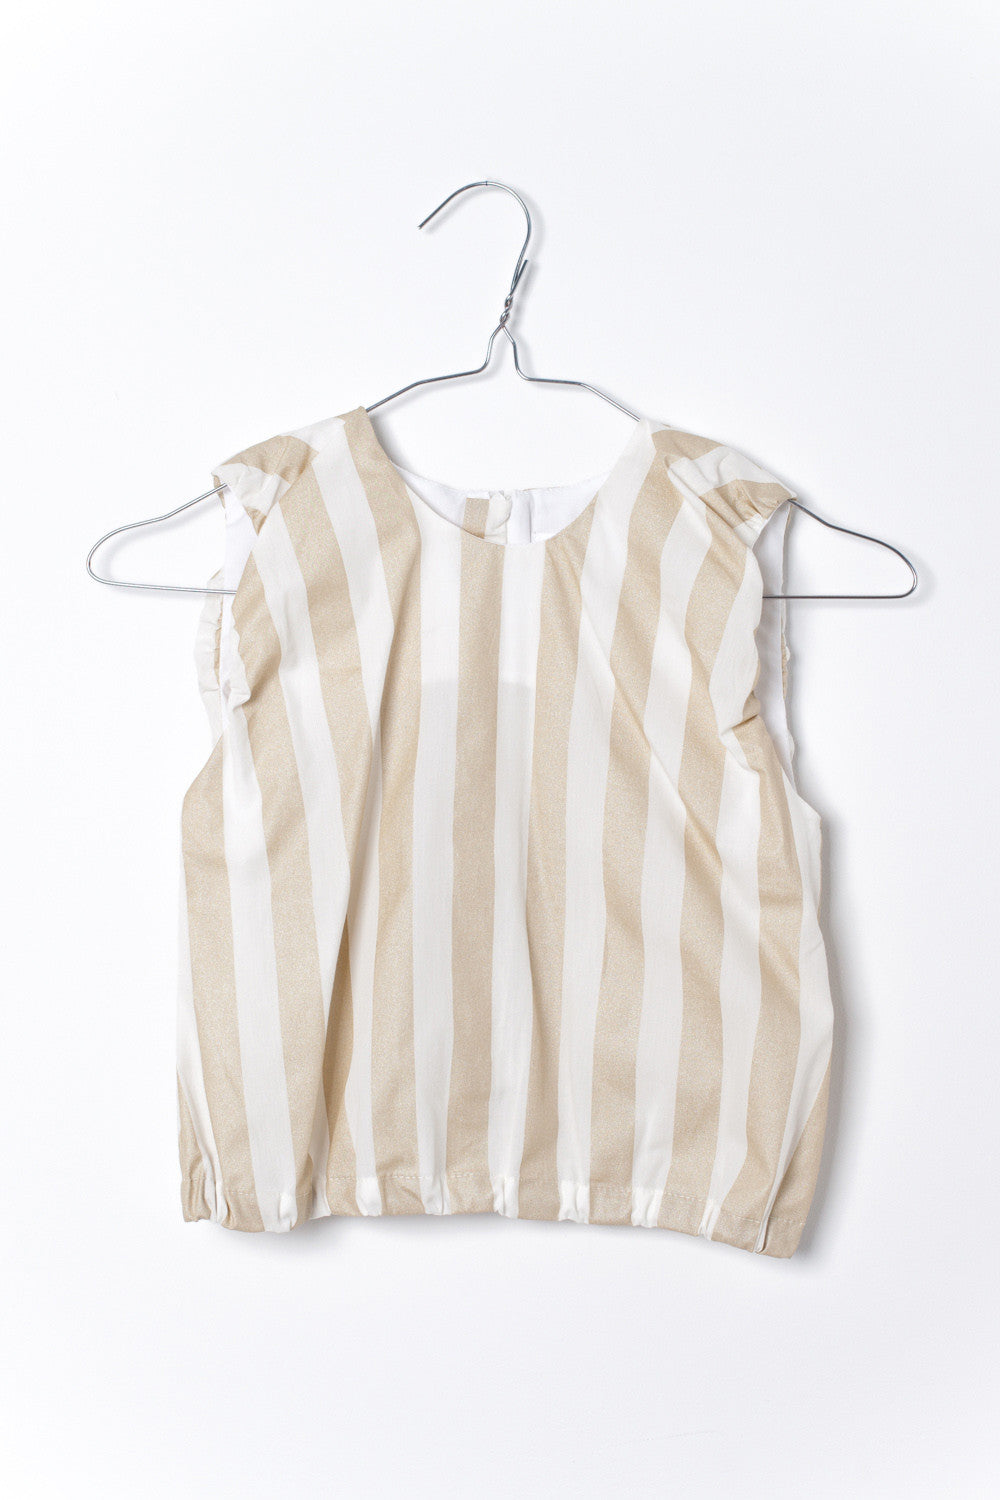 Motoreta Violeta Gold Stripes Blouse - Ladida